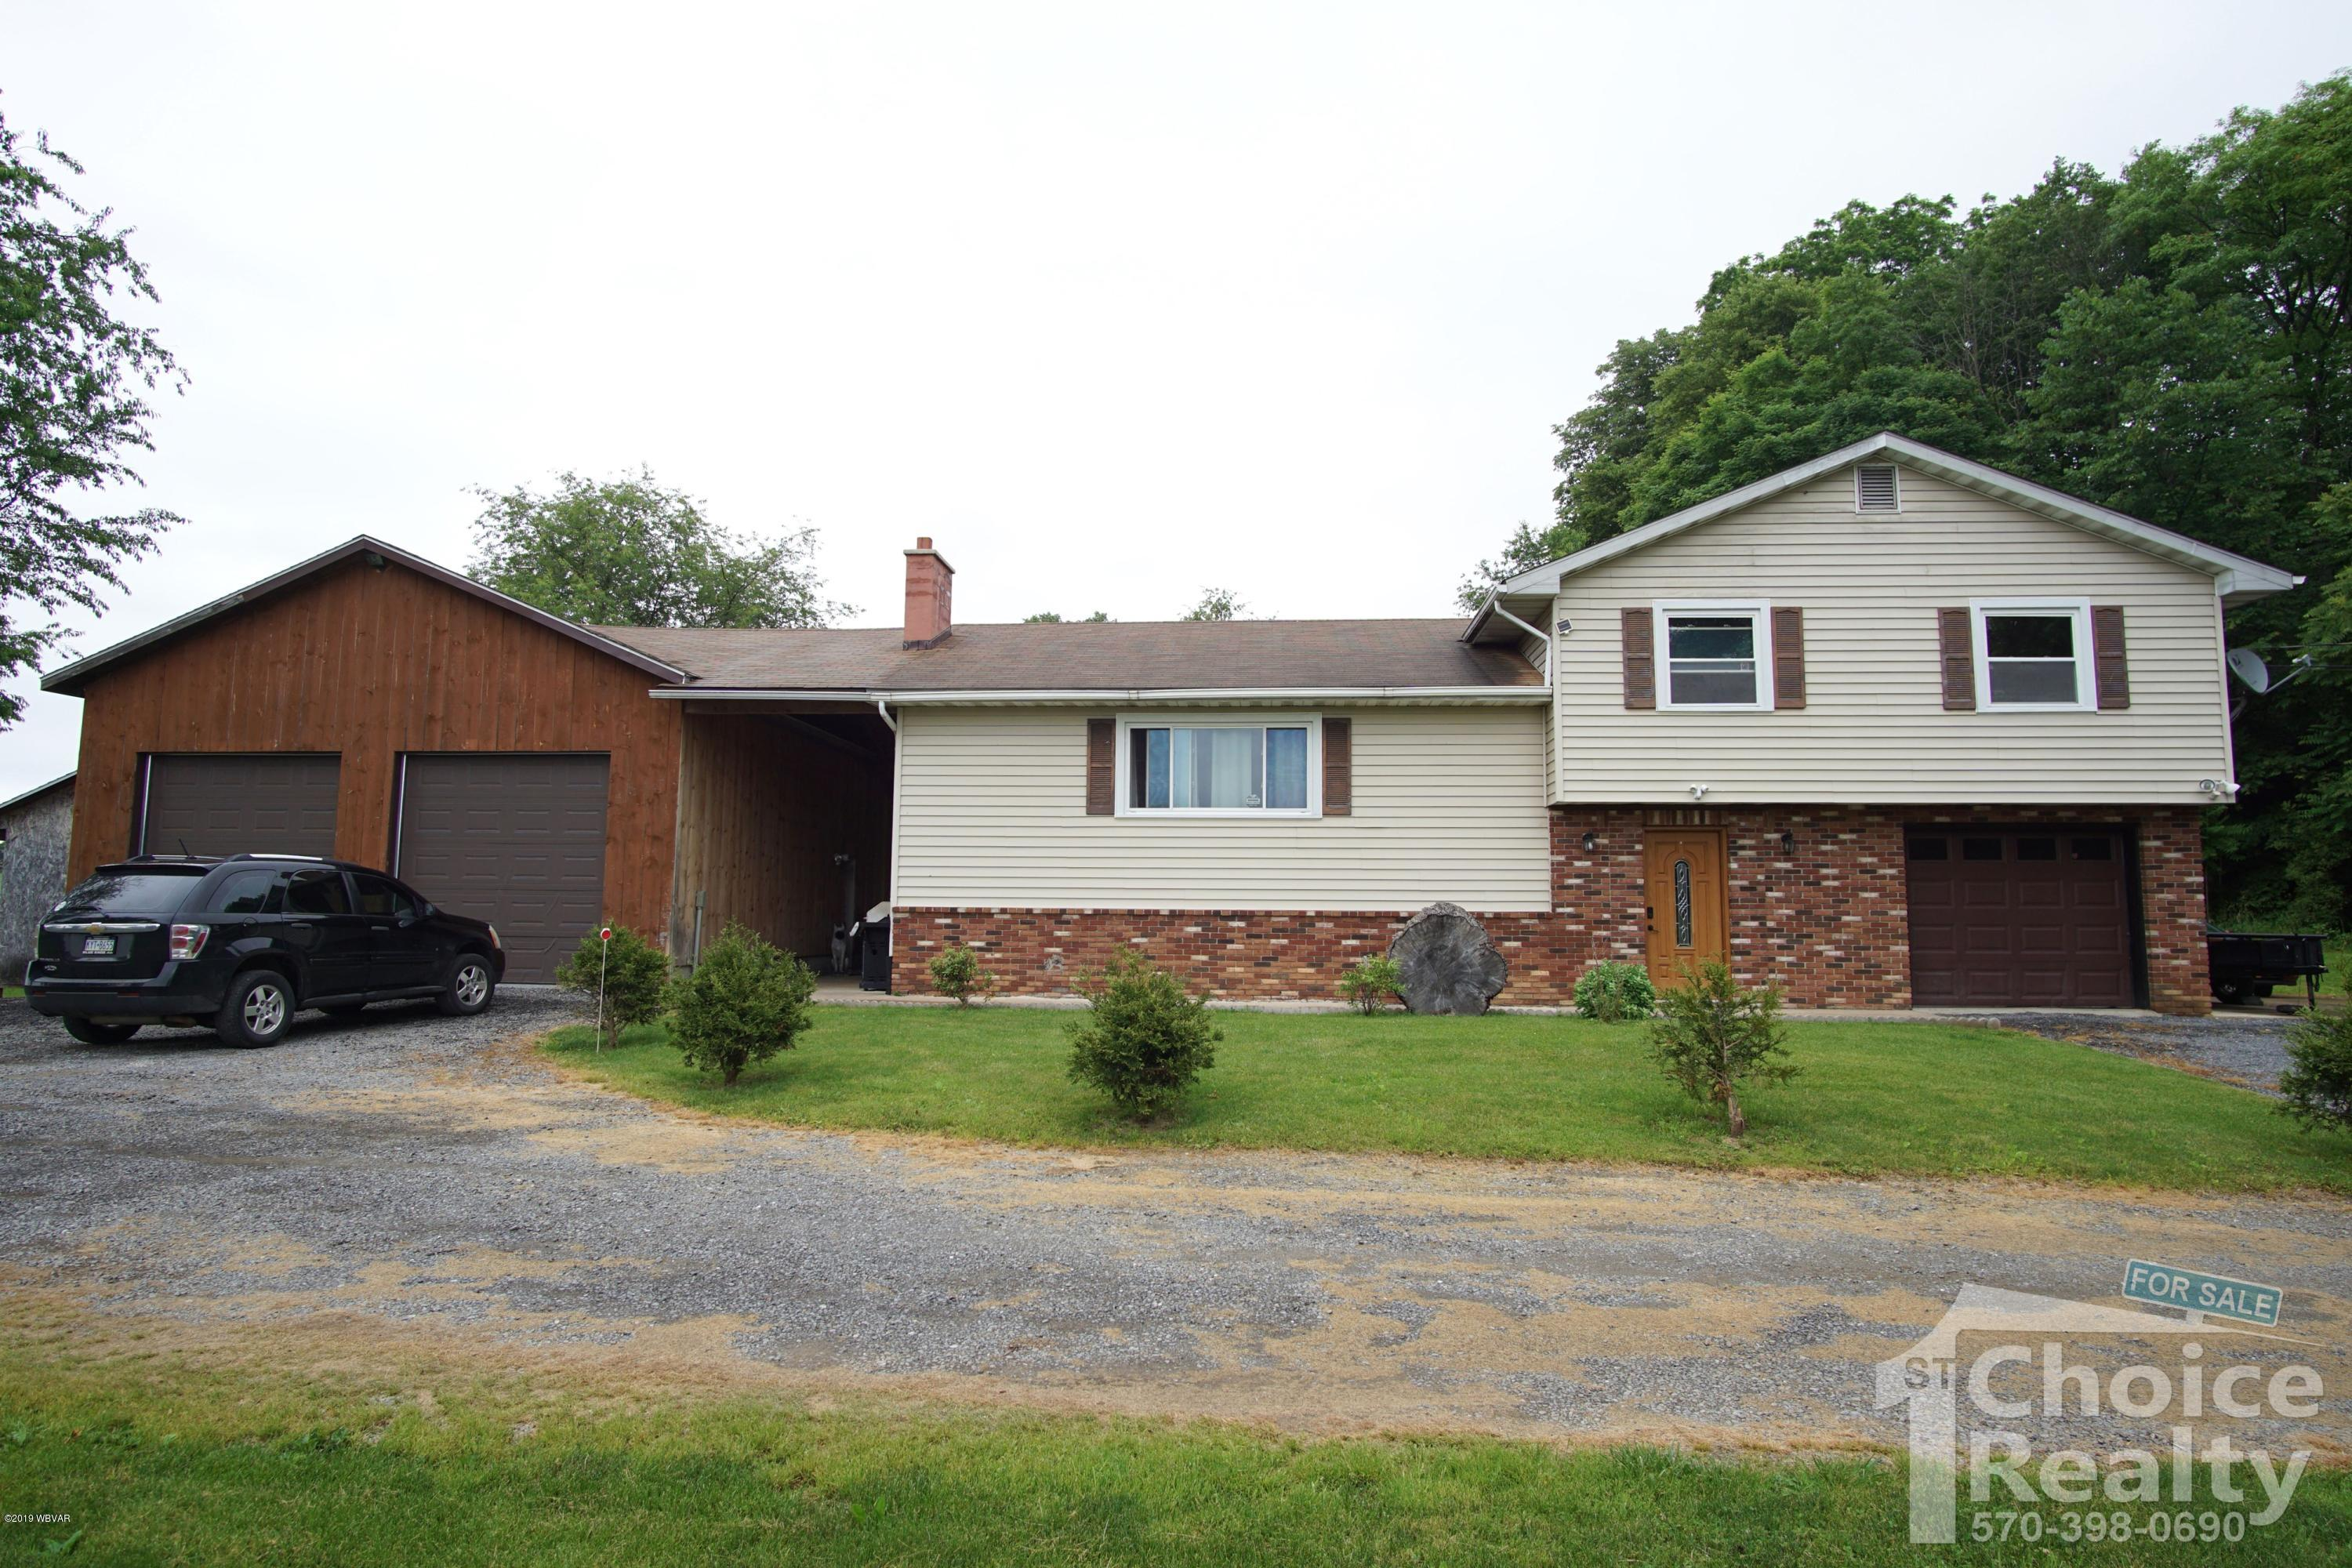 31 WOODWARD STREET,Mill Hall,PA 17751,3 Bedrooms Bedrooms,2 BathroomsBathrooms,Residential,WOODWARD,WB-87623